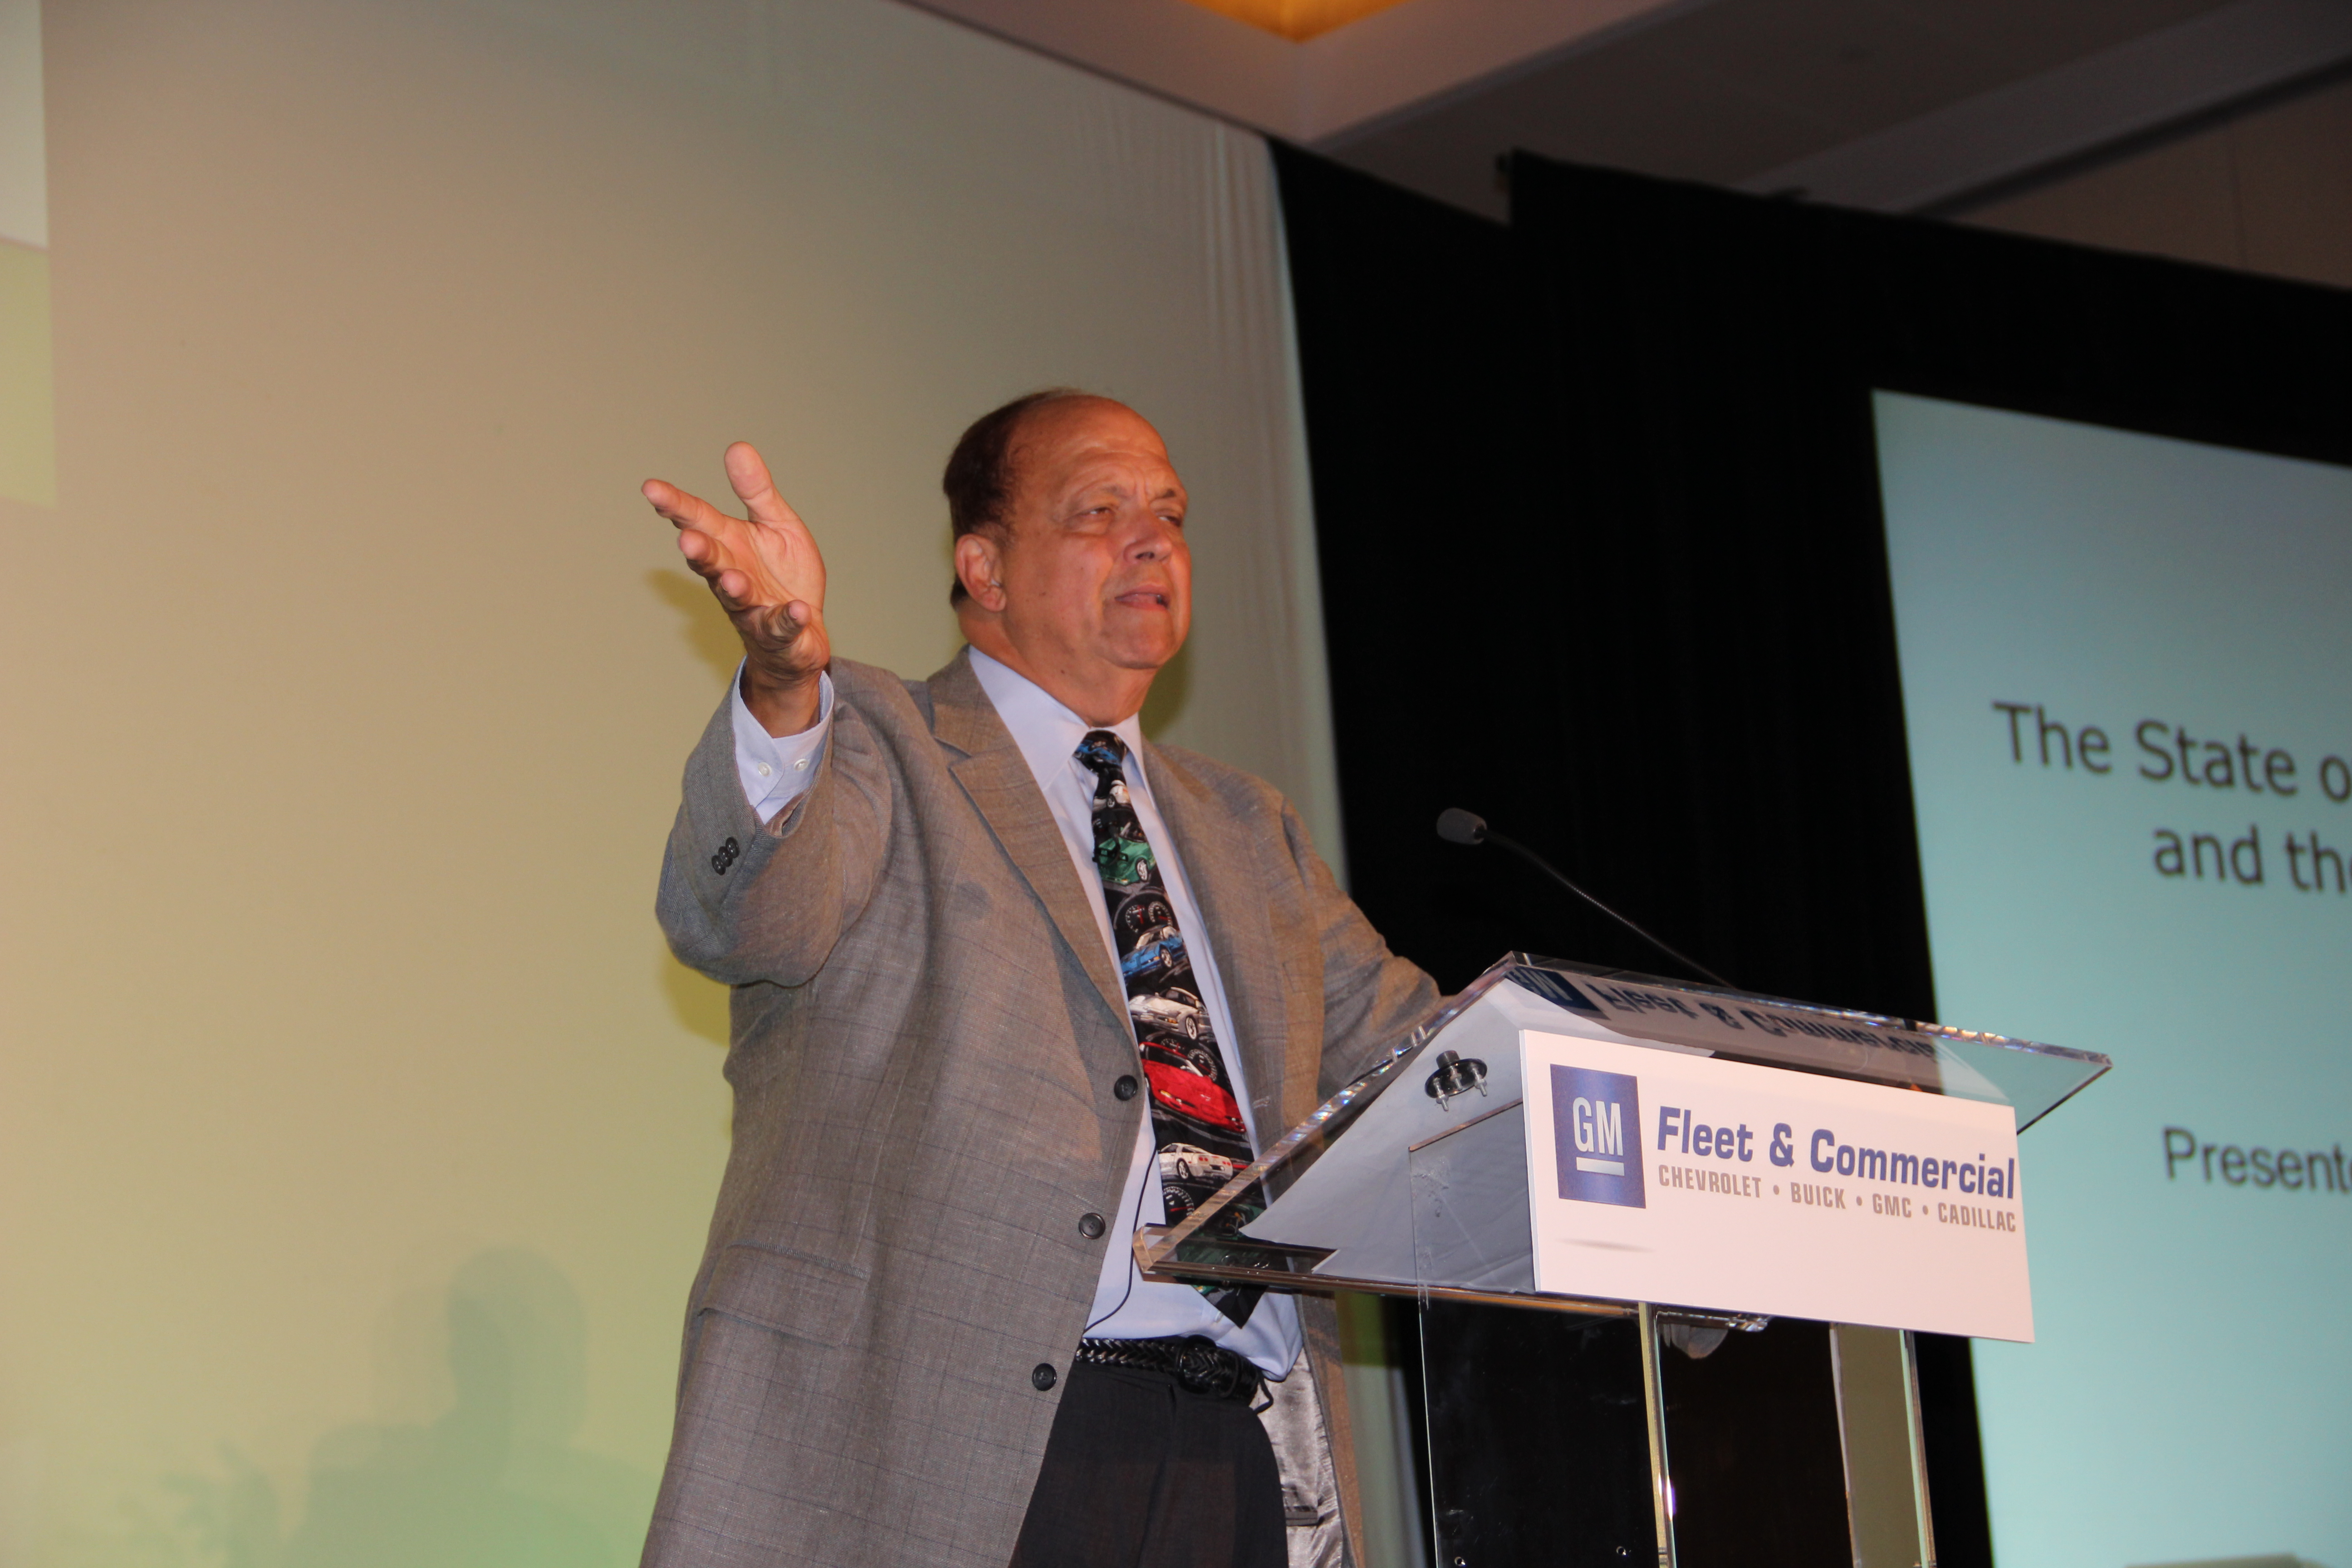 2012 Green Fleet Conference: Davis' Opening Keynote Covers State of Electric Vehicles